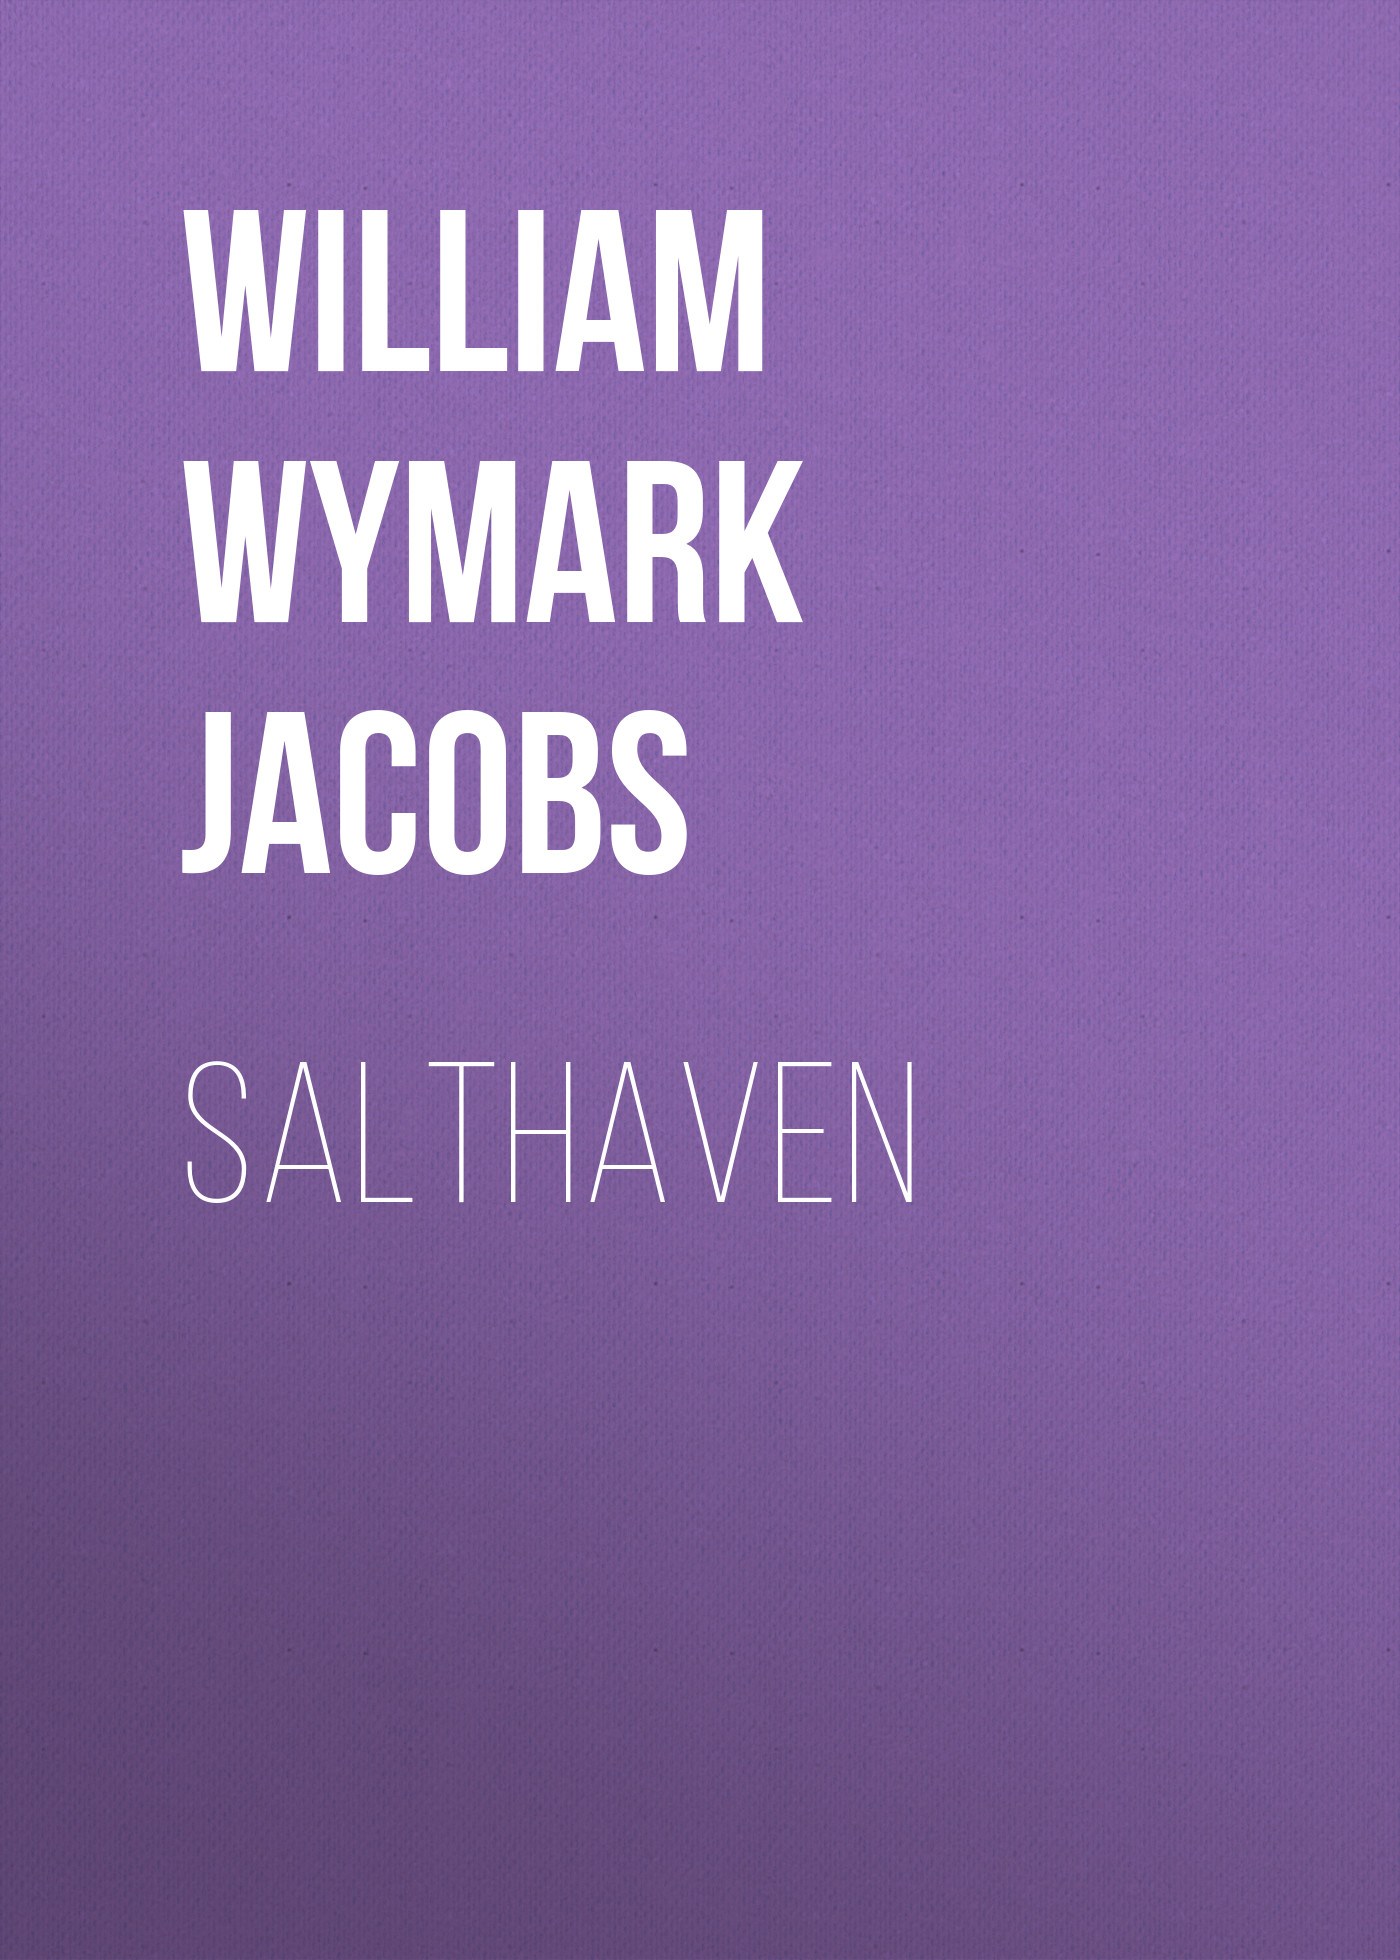 лучшая цена William Wymark Jacobs Salthaven